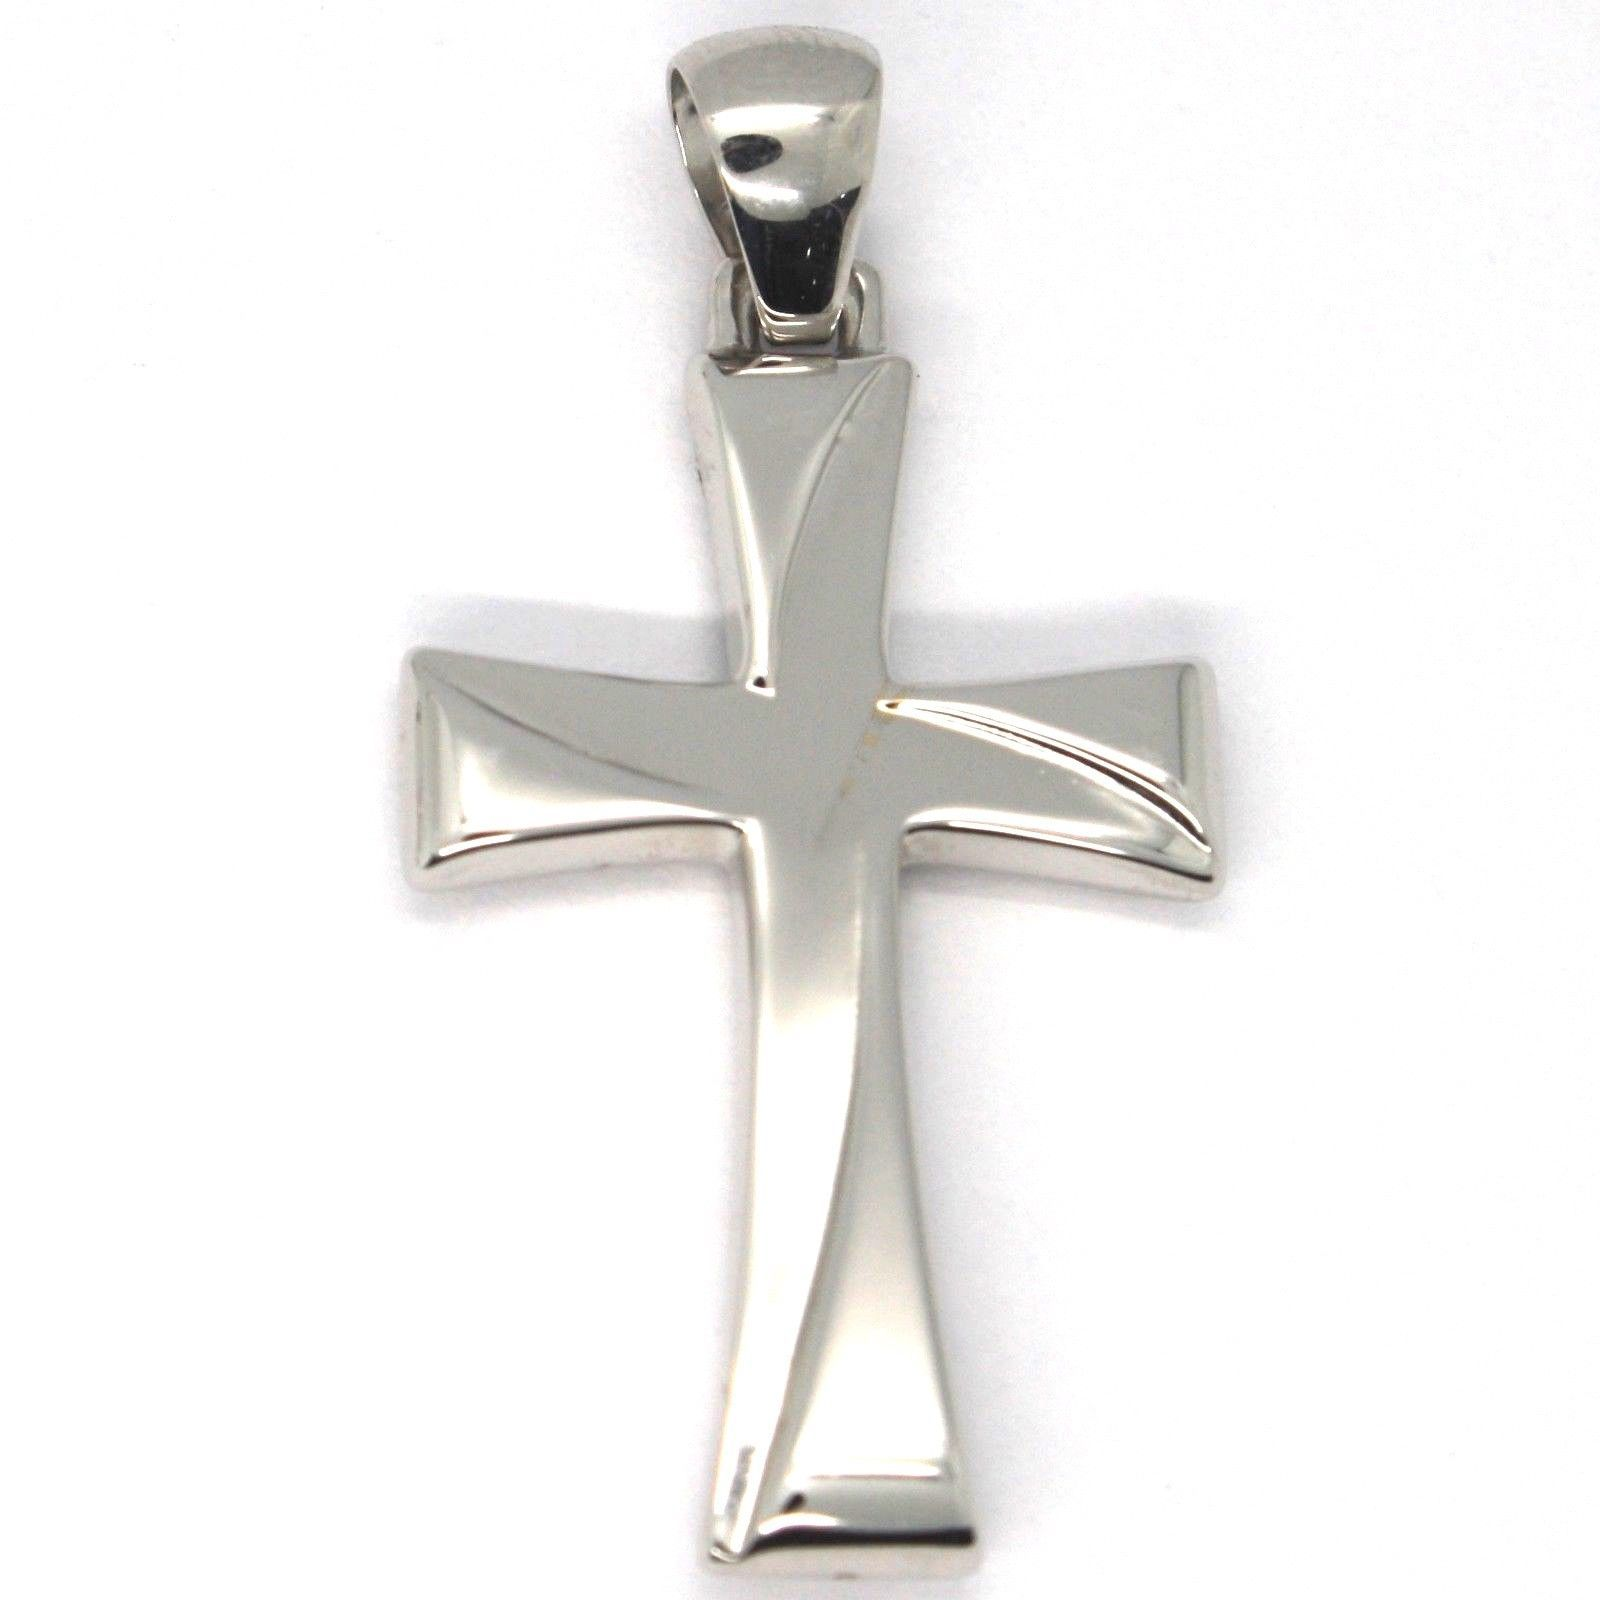 18K WHITE GOLD SQUARE ONDULATE CROSS BIG 4 CM, 1.6 INCHES, BRIGTH, MADE IN ITALY